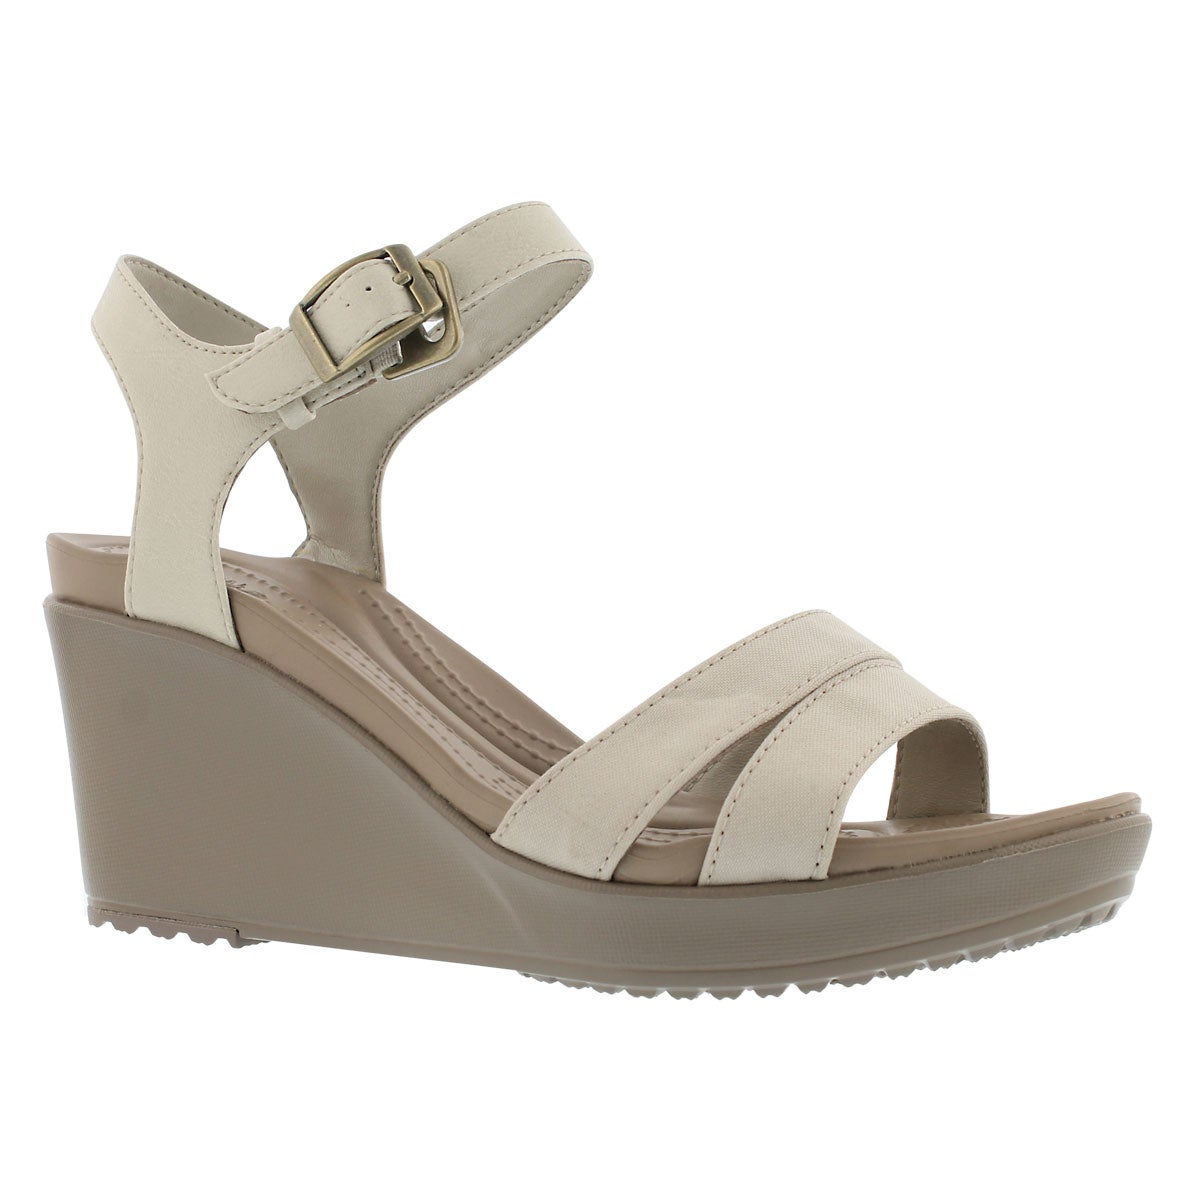 Women's LEIGH II oatmeal/kaki wedge sandals